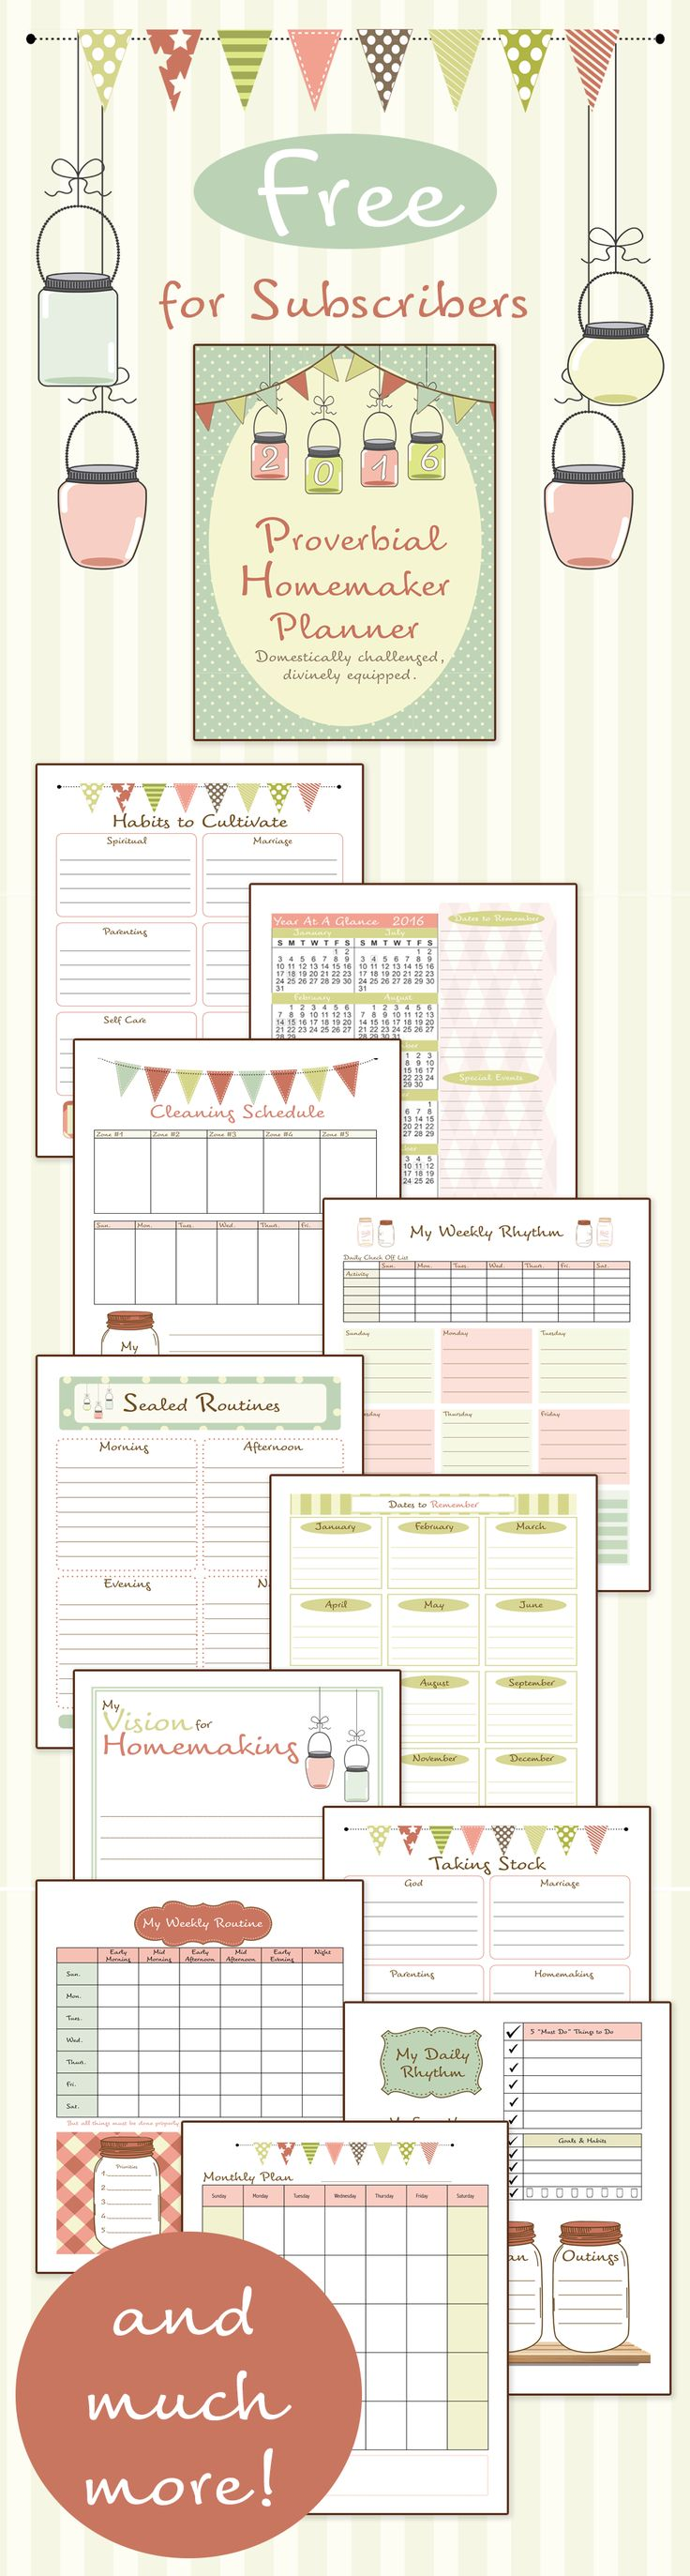 "I love this planner! I love that it's designed for the ""domestically challenged."" There's an e-course that goes with it too!"